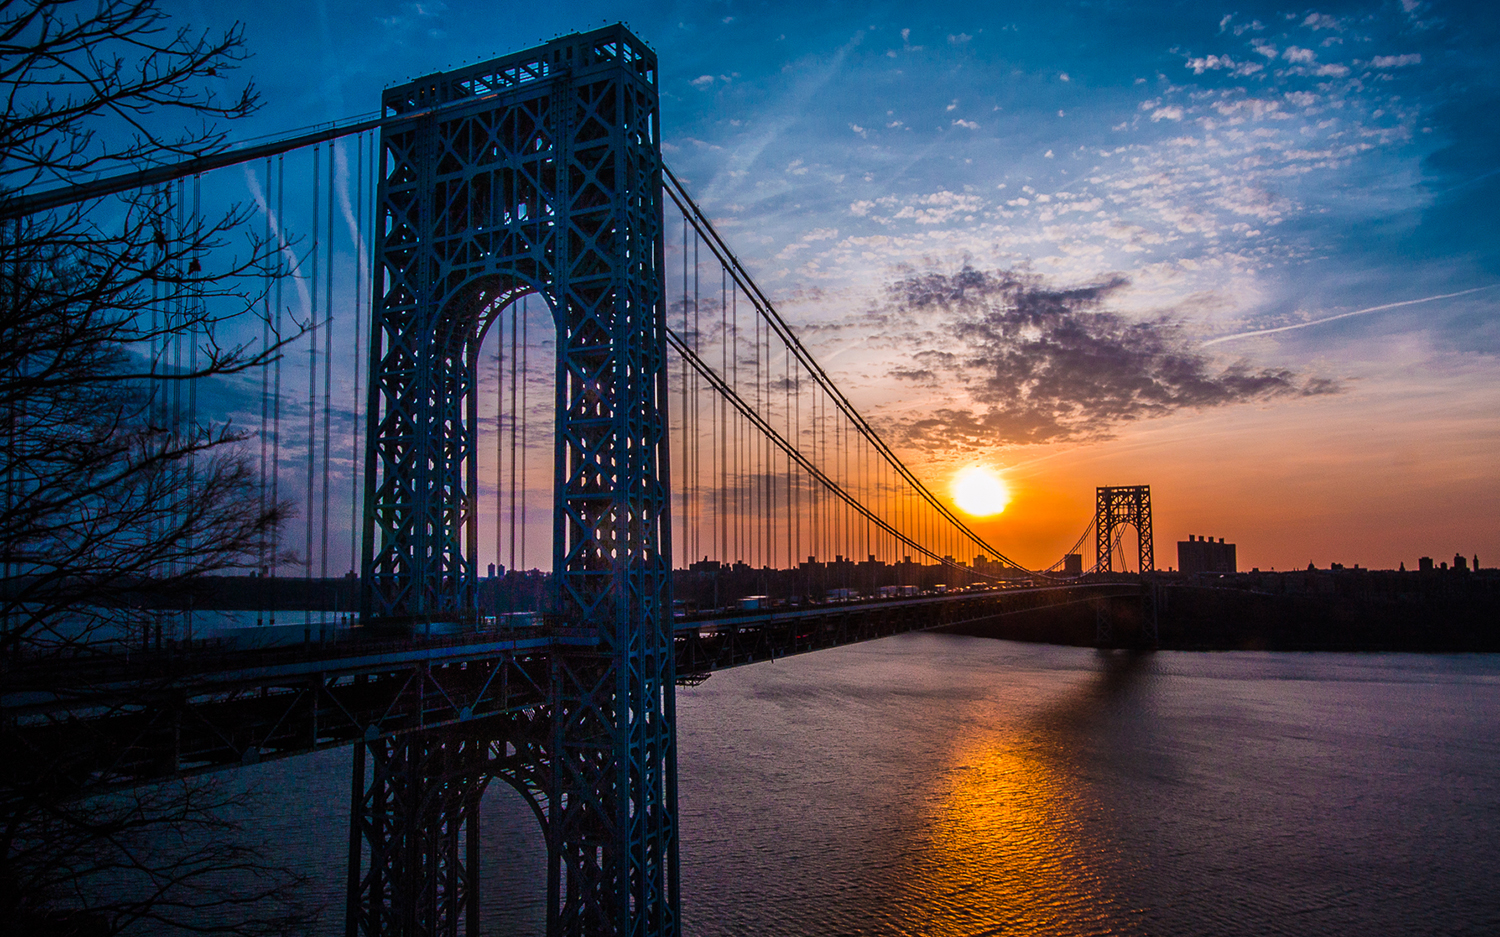 The Long Path starts at 175th Street subway station and immediately crosses the George Washington Bridge.  Steve Aaron Photography